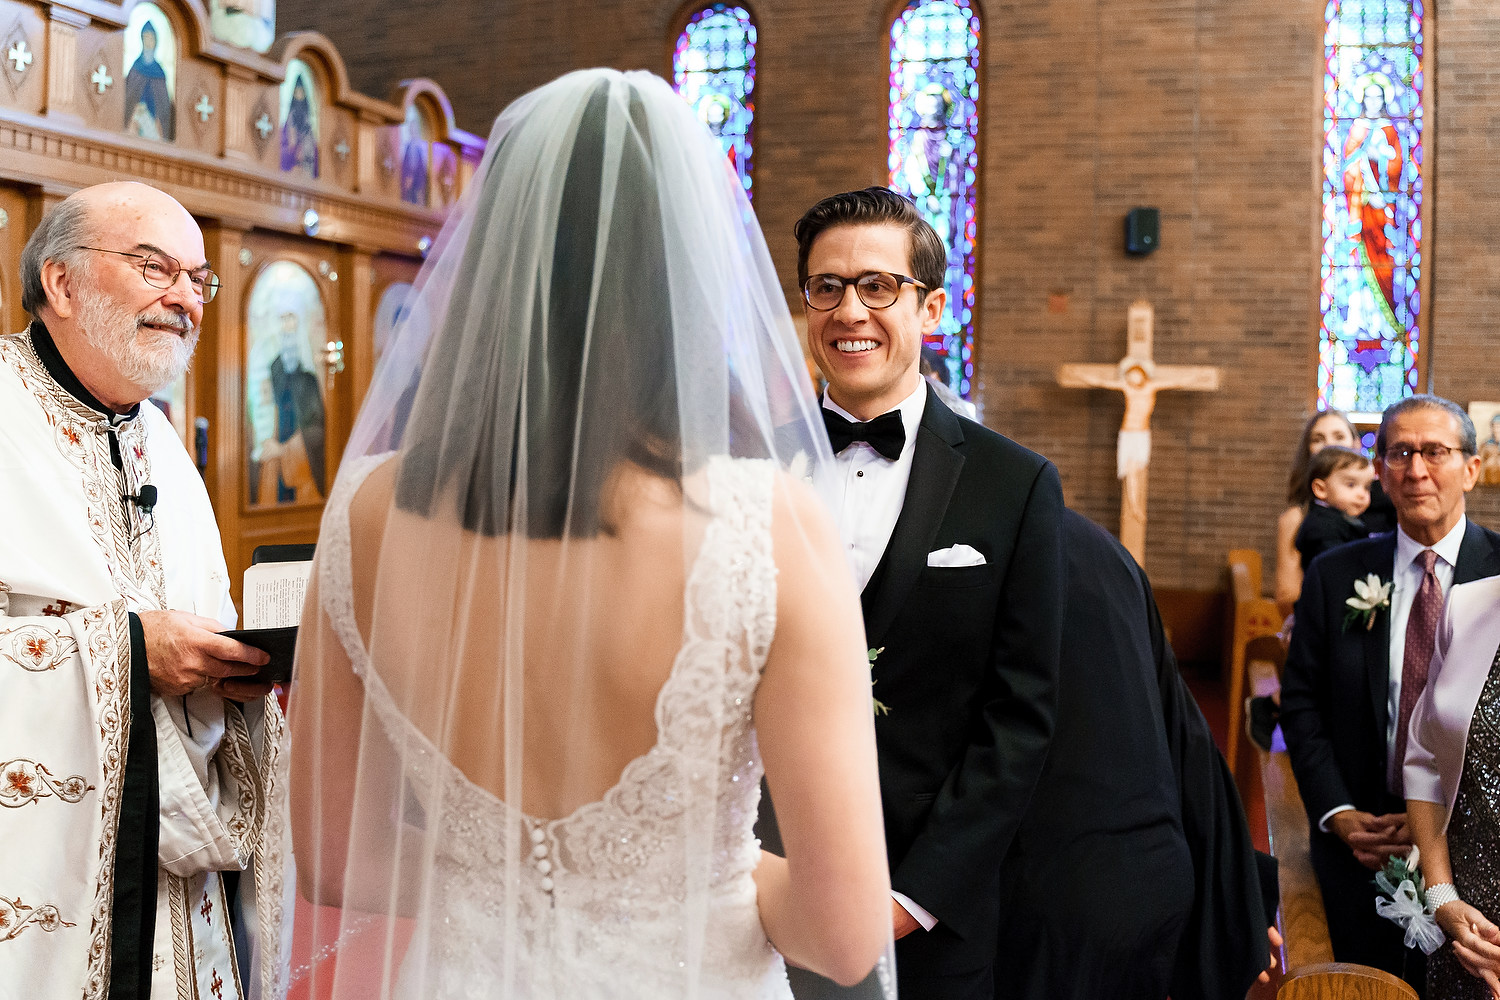 Boston St George Orthodox Church wedding photo session 47